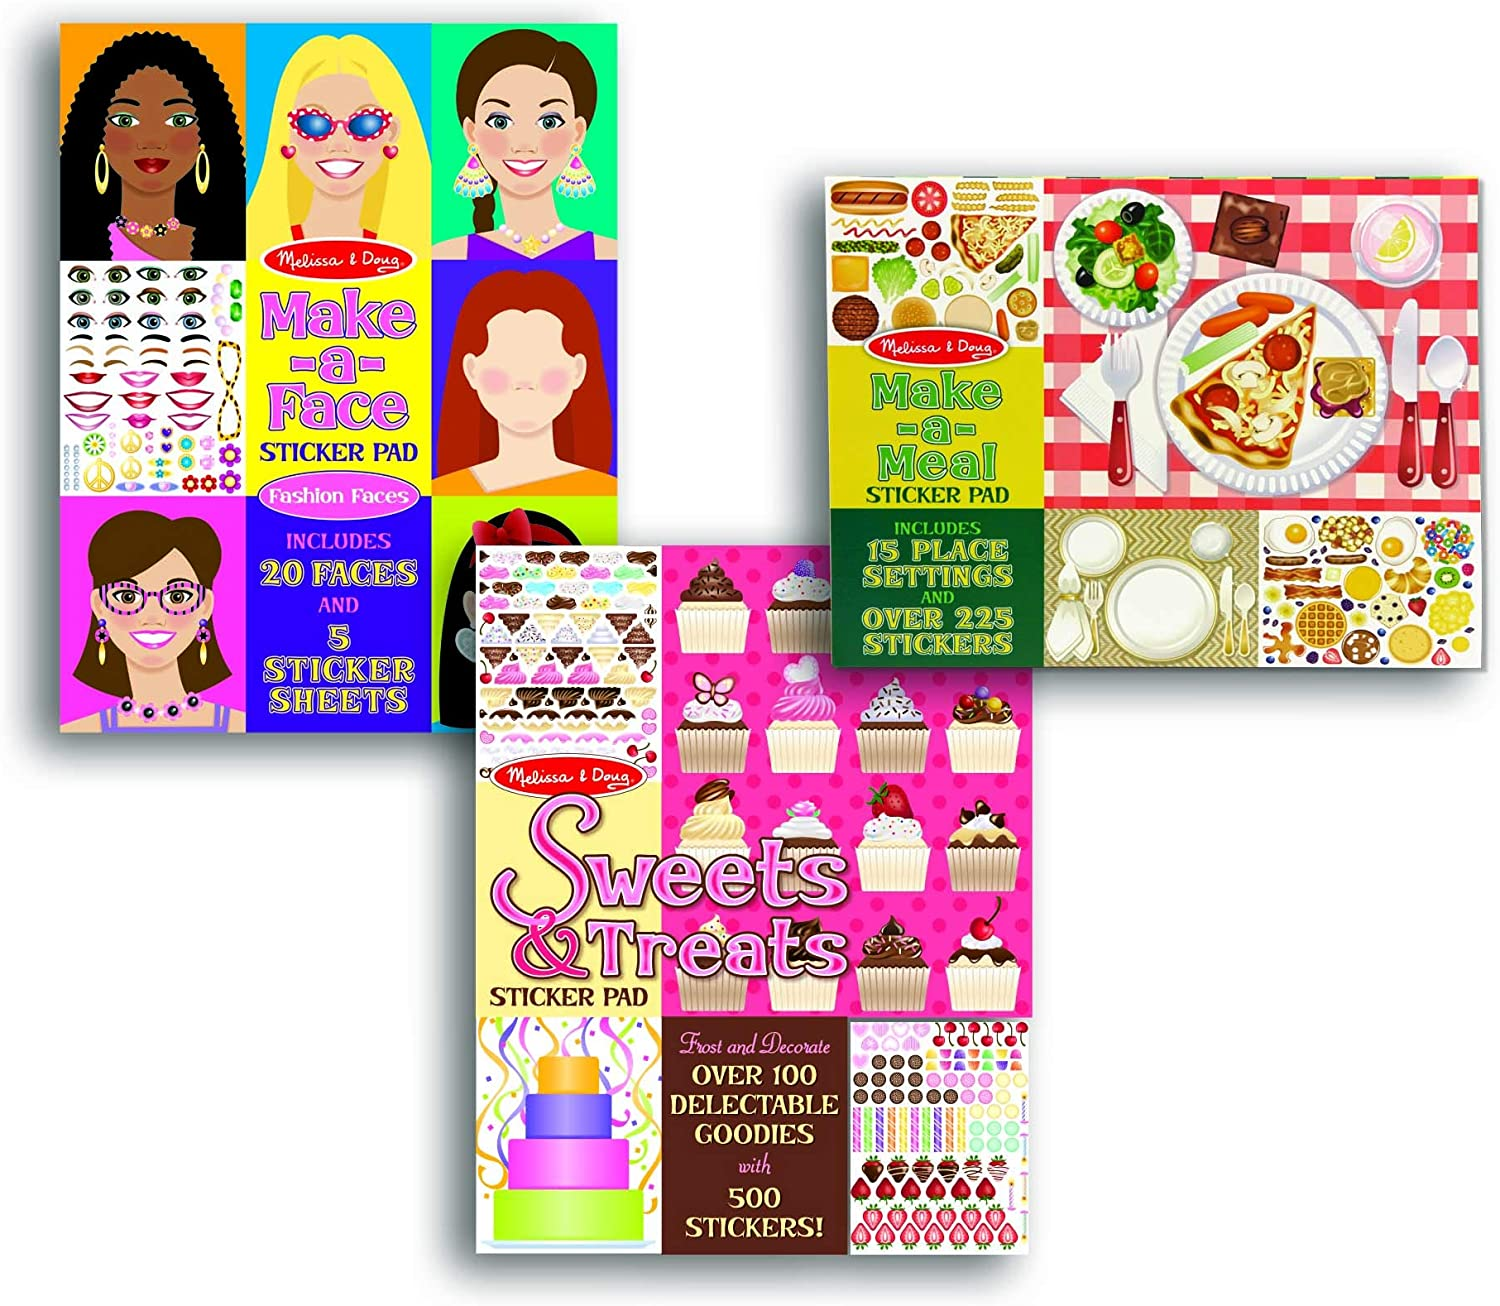 Melissa & Doug Sticker Pads Set: Sweets and Treats, Make-a-Face Fashion, and Make-a-Meal